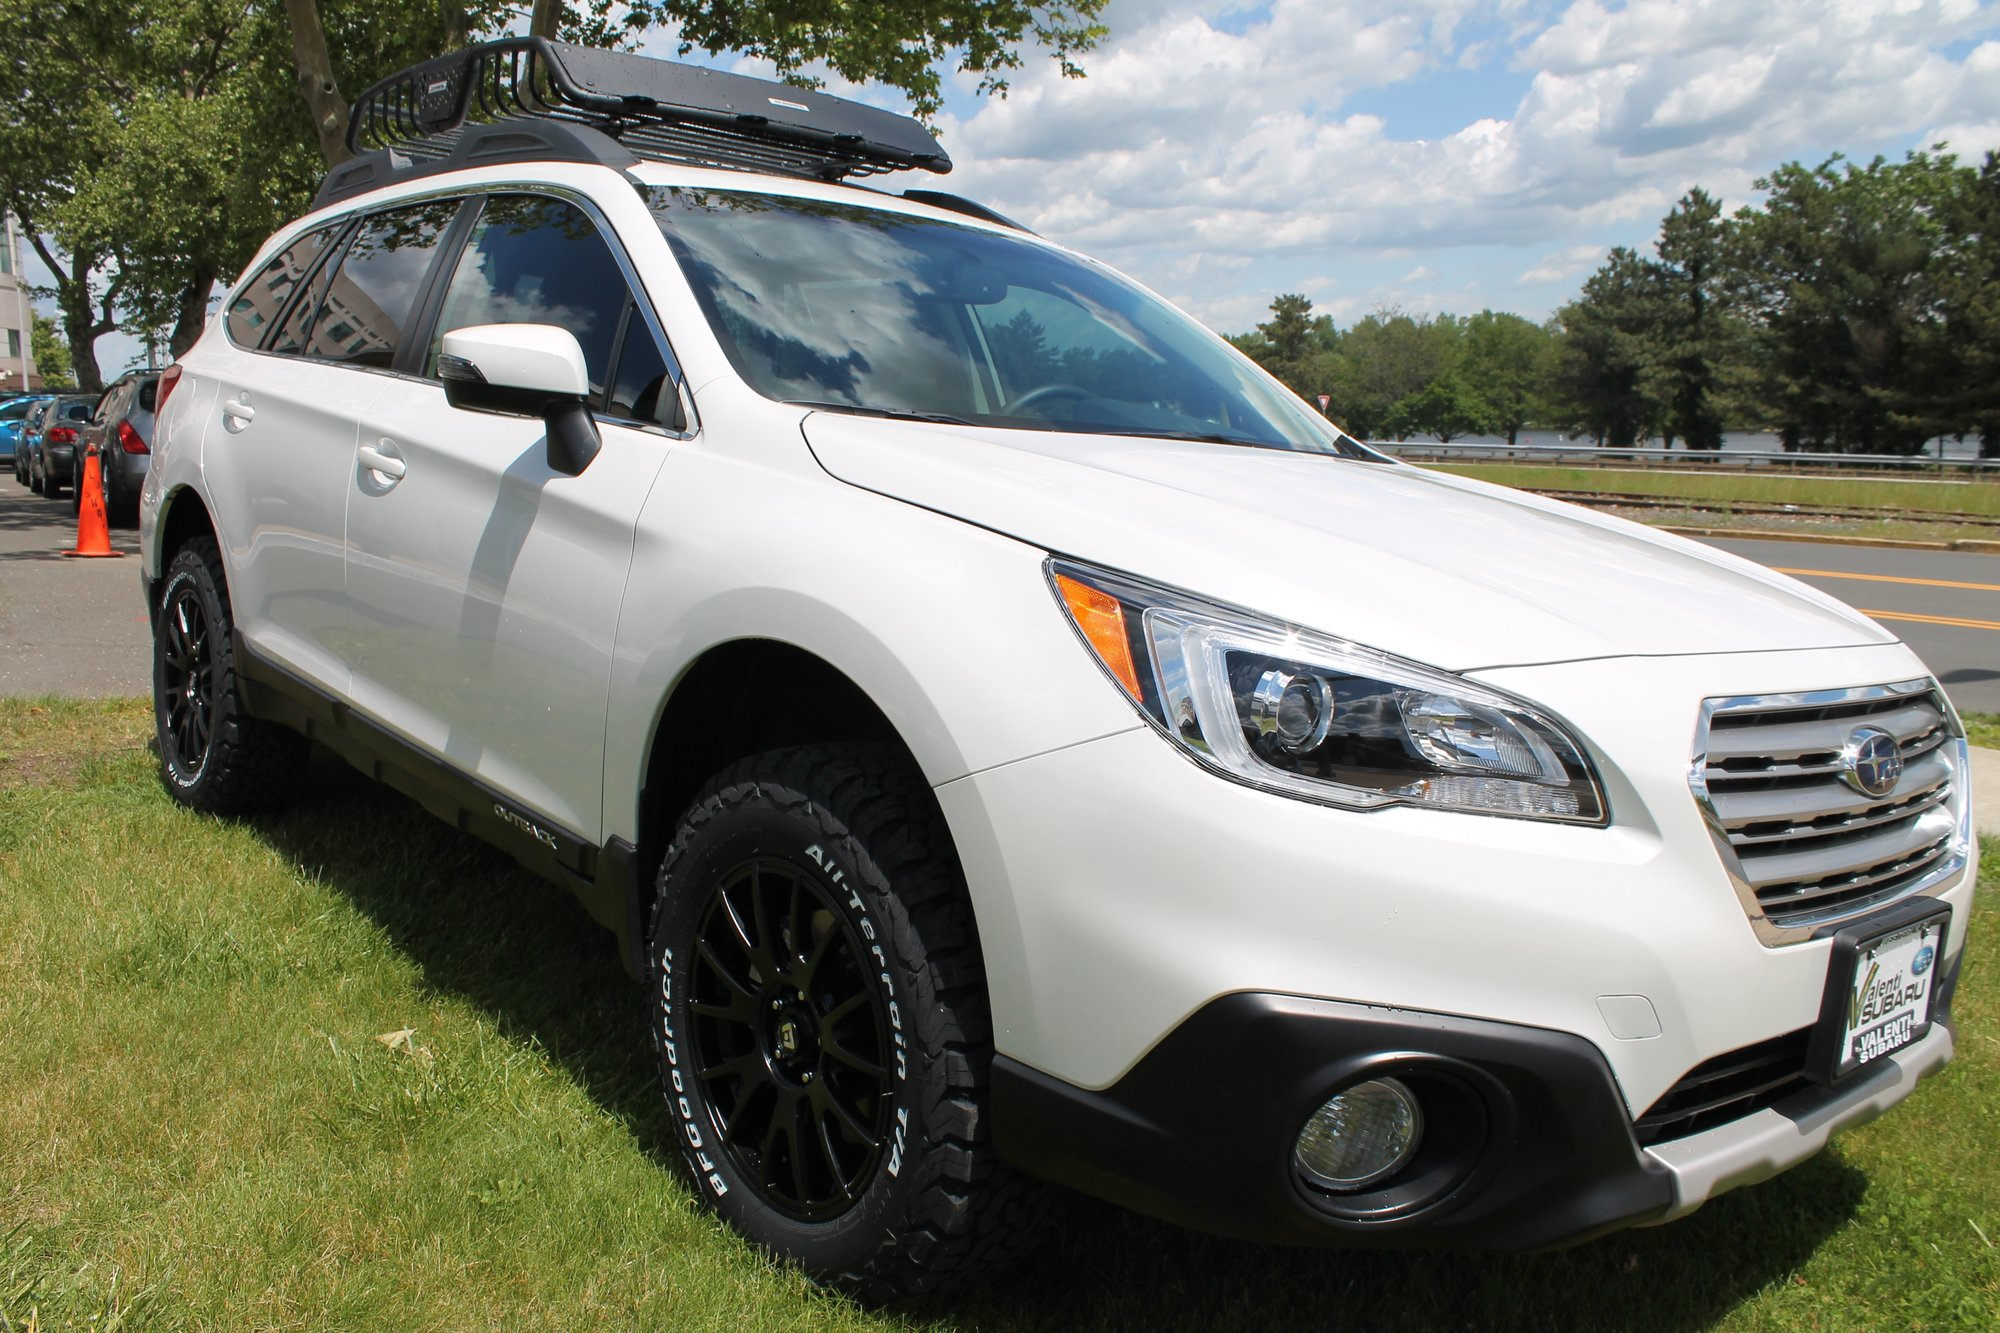 Subaru Outback Lift Kit >> Subaru Lift Kits Gallery in Connecticut | Attention To Detail